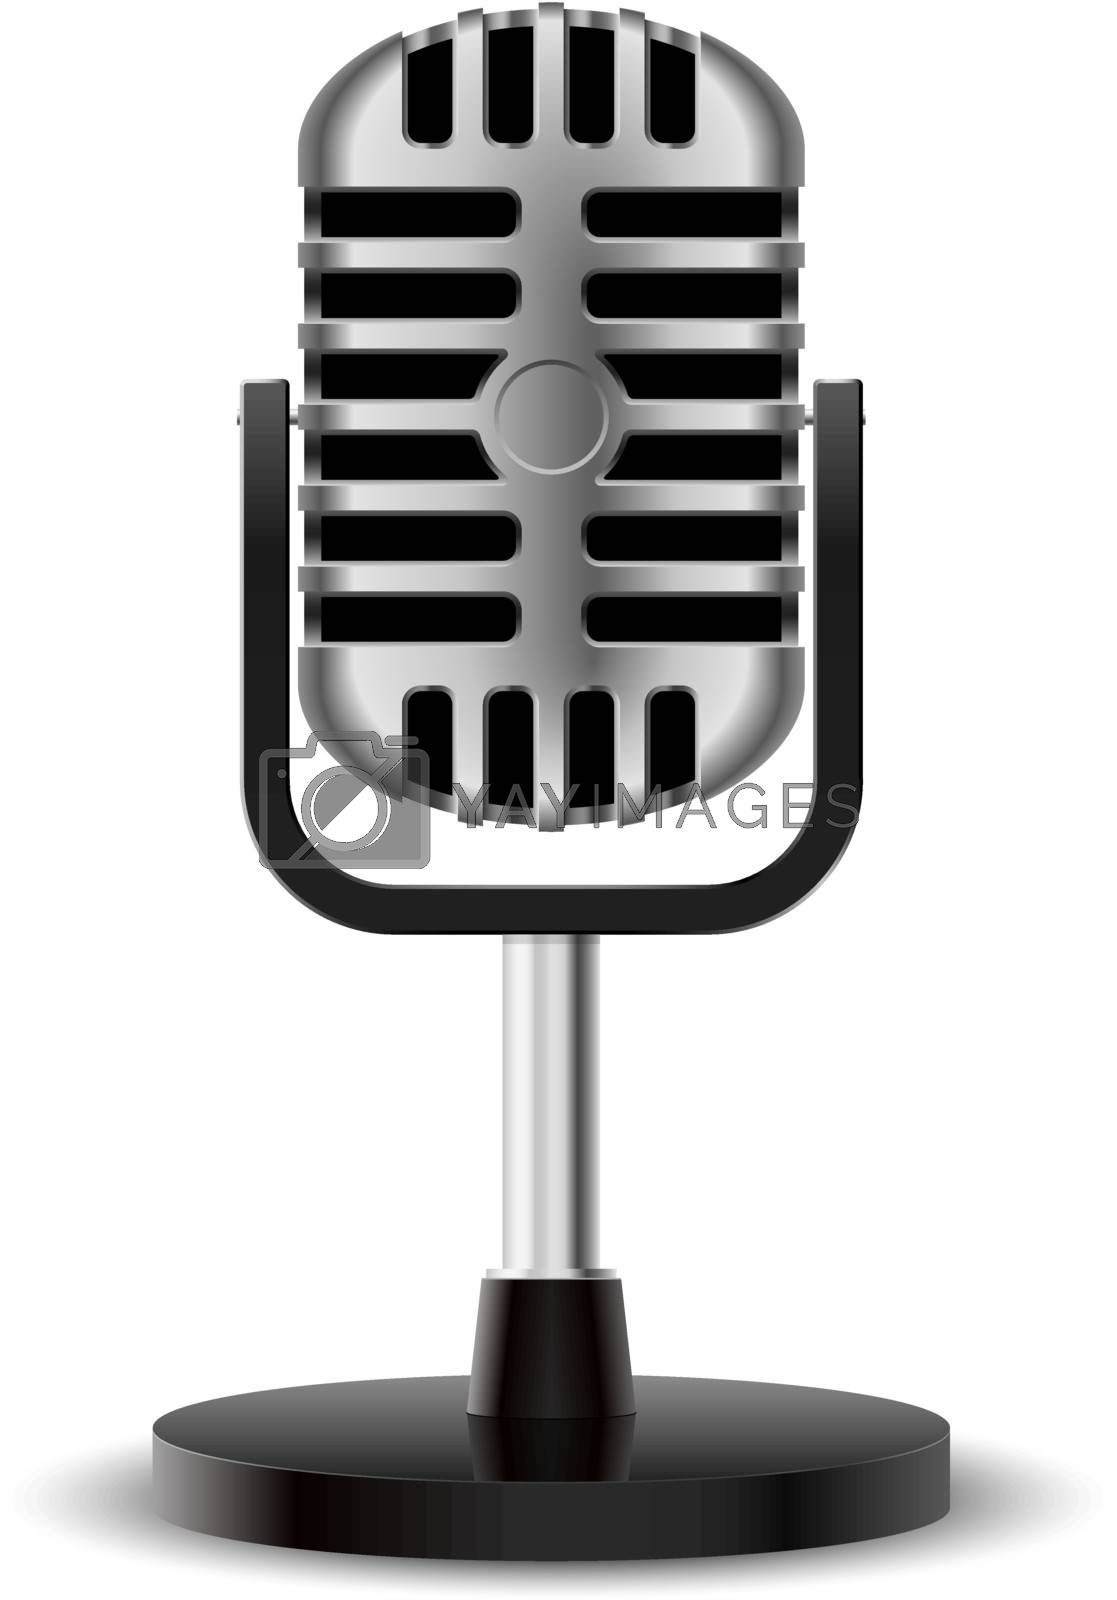 Realistic retro microphone. Illustration on white background for design